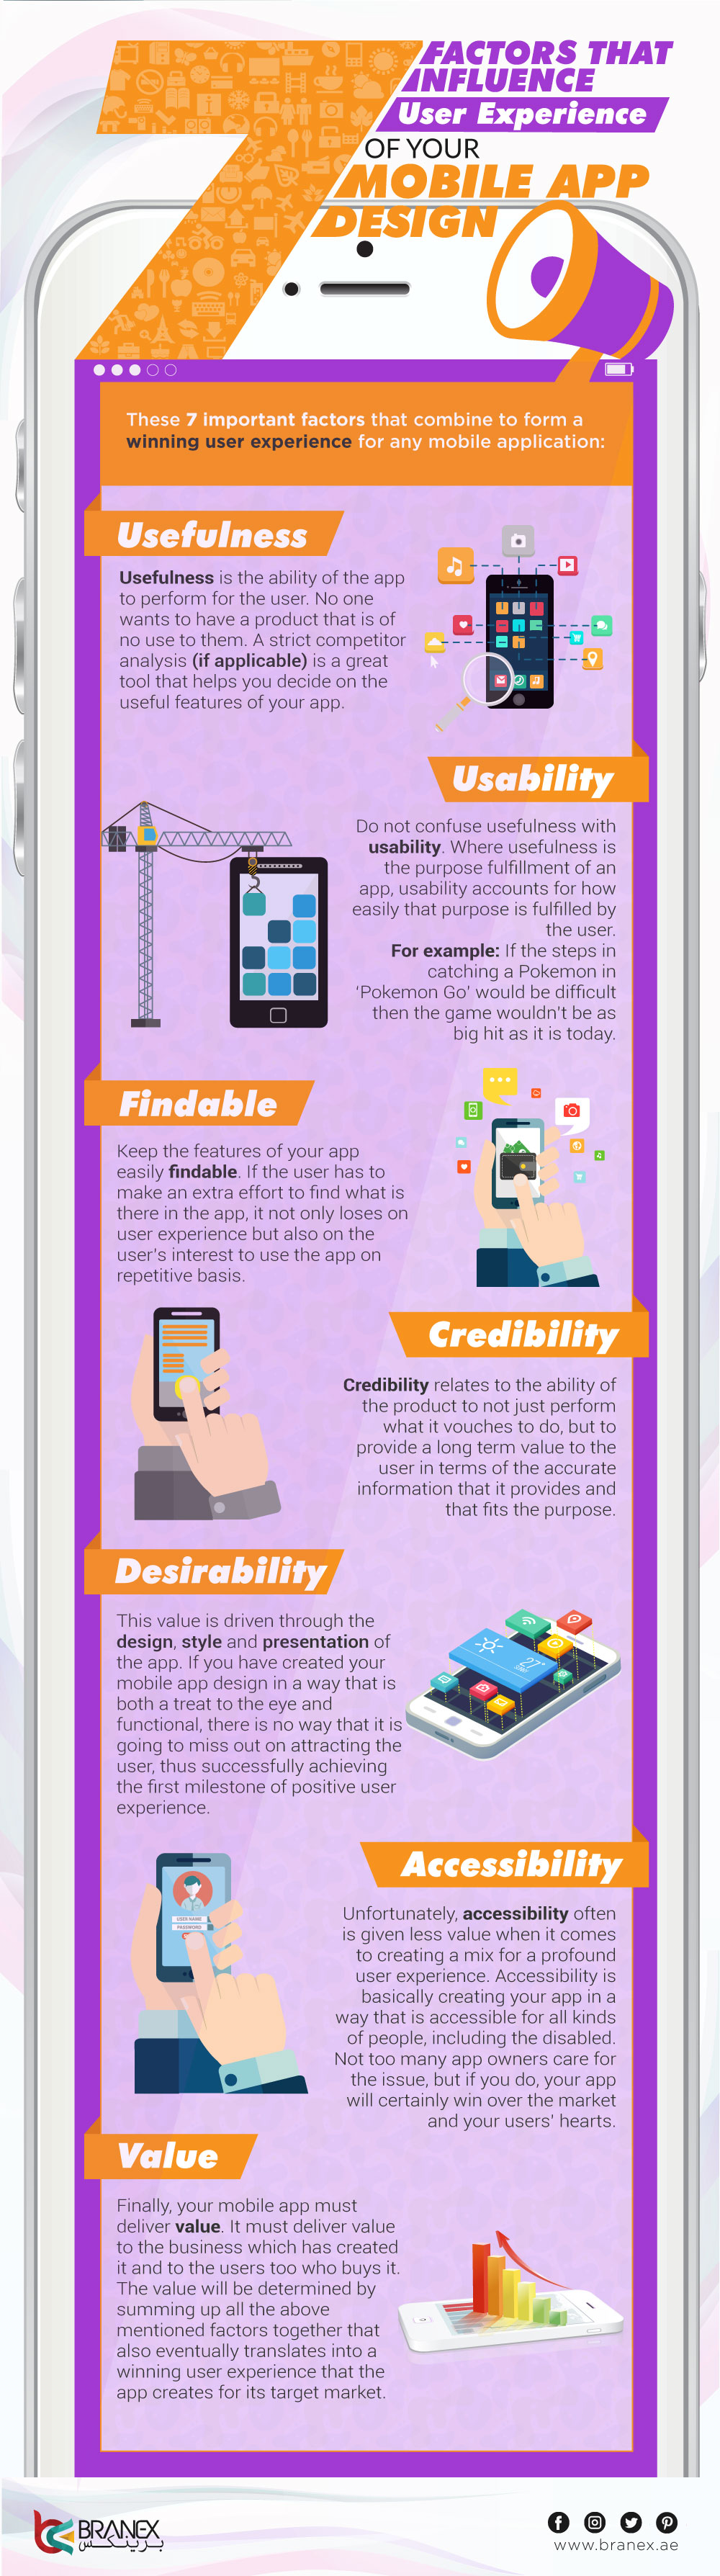 7 Factors that Influence User Experience of Your Mobile App Design